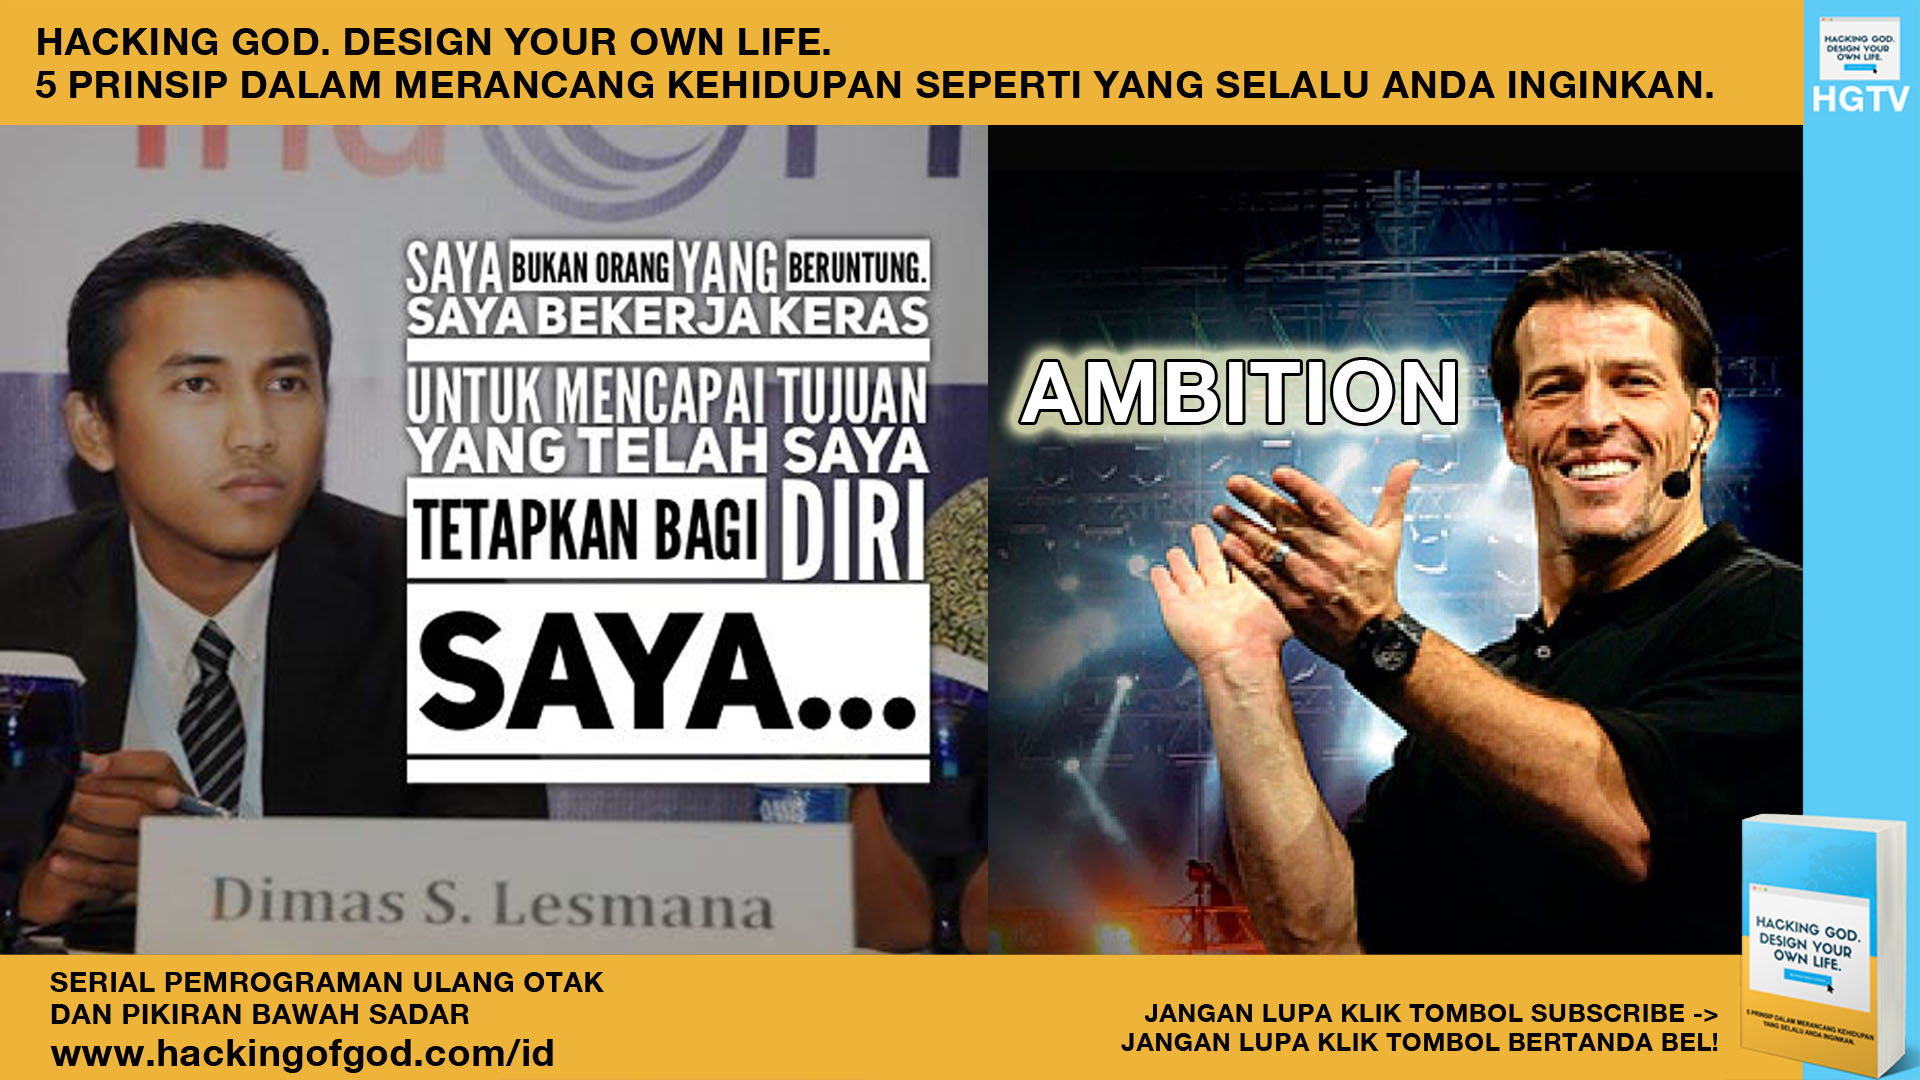 Video Motivasi – Ambition! Strategi, Ambisi, Yakin dan Percaya